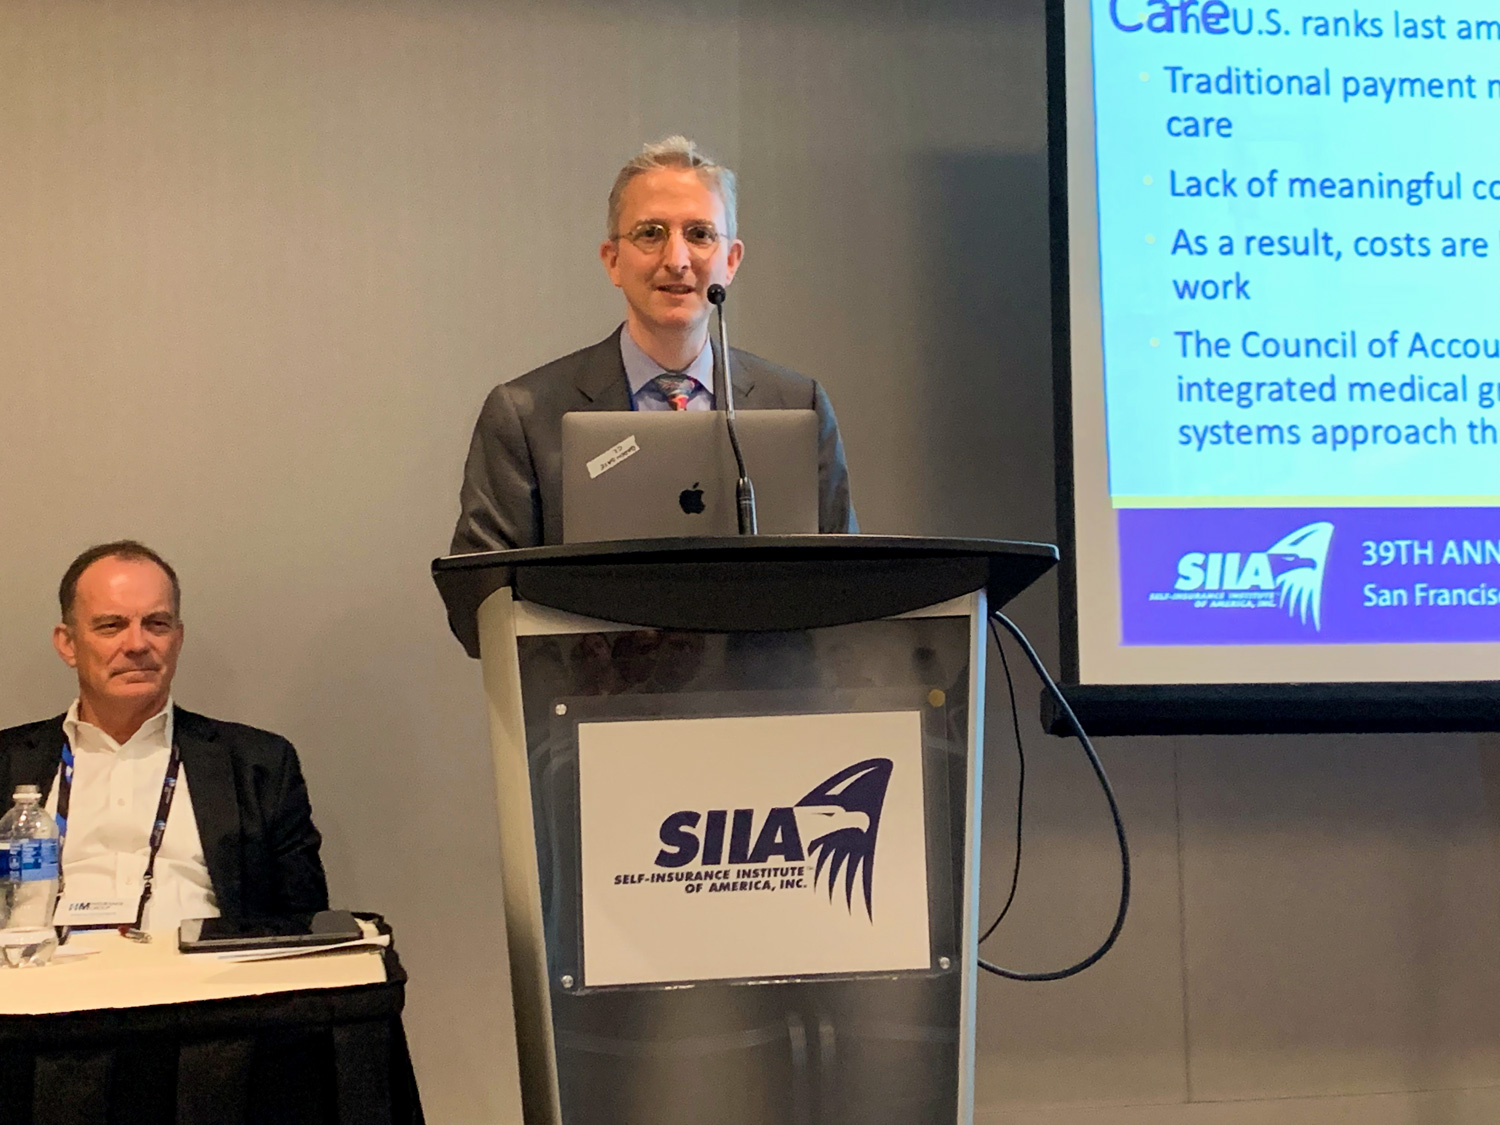 Dr. Parodi addresses SIIA